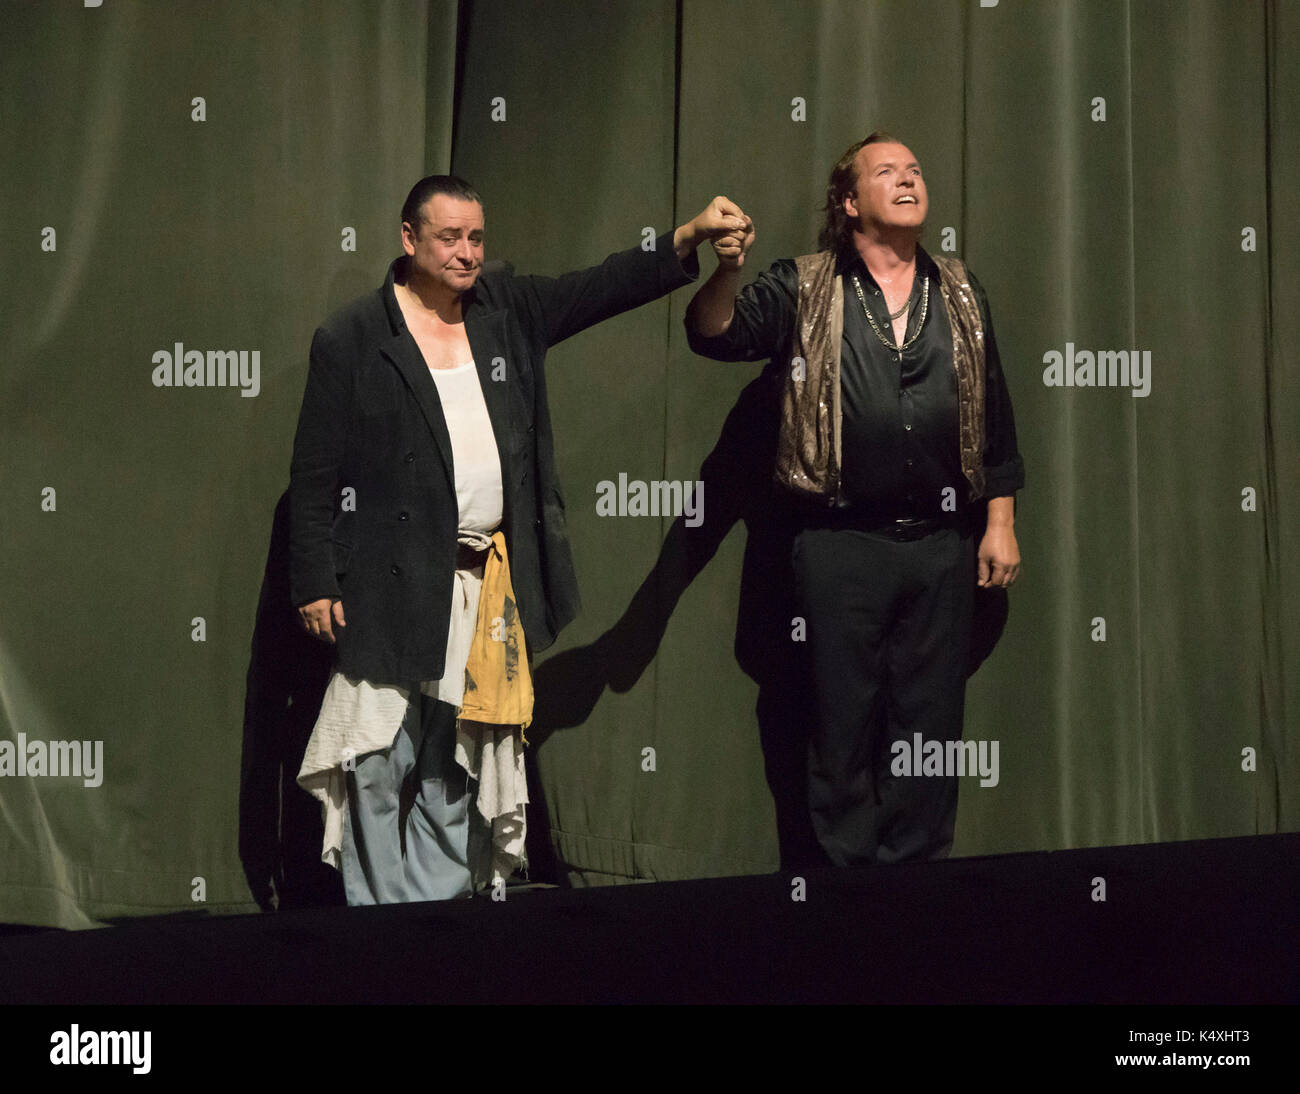 Andreas Conrad as Mime and Stefan Vinke as Siegfried taking a curtain call , Siegfried, Bayreuth Opera Festival 2017, Bavaria, Germany - Stock Image